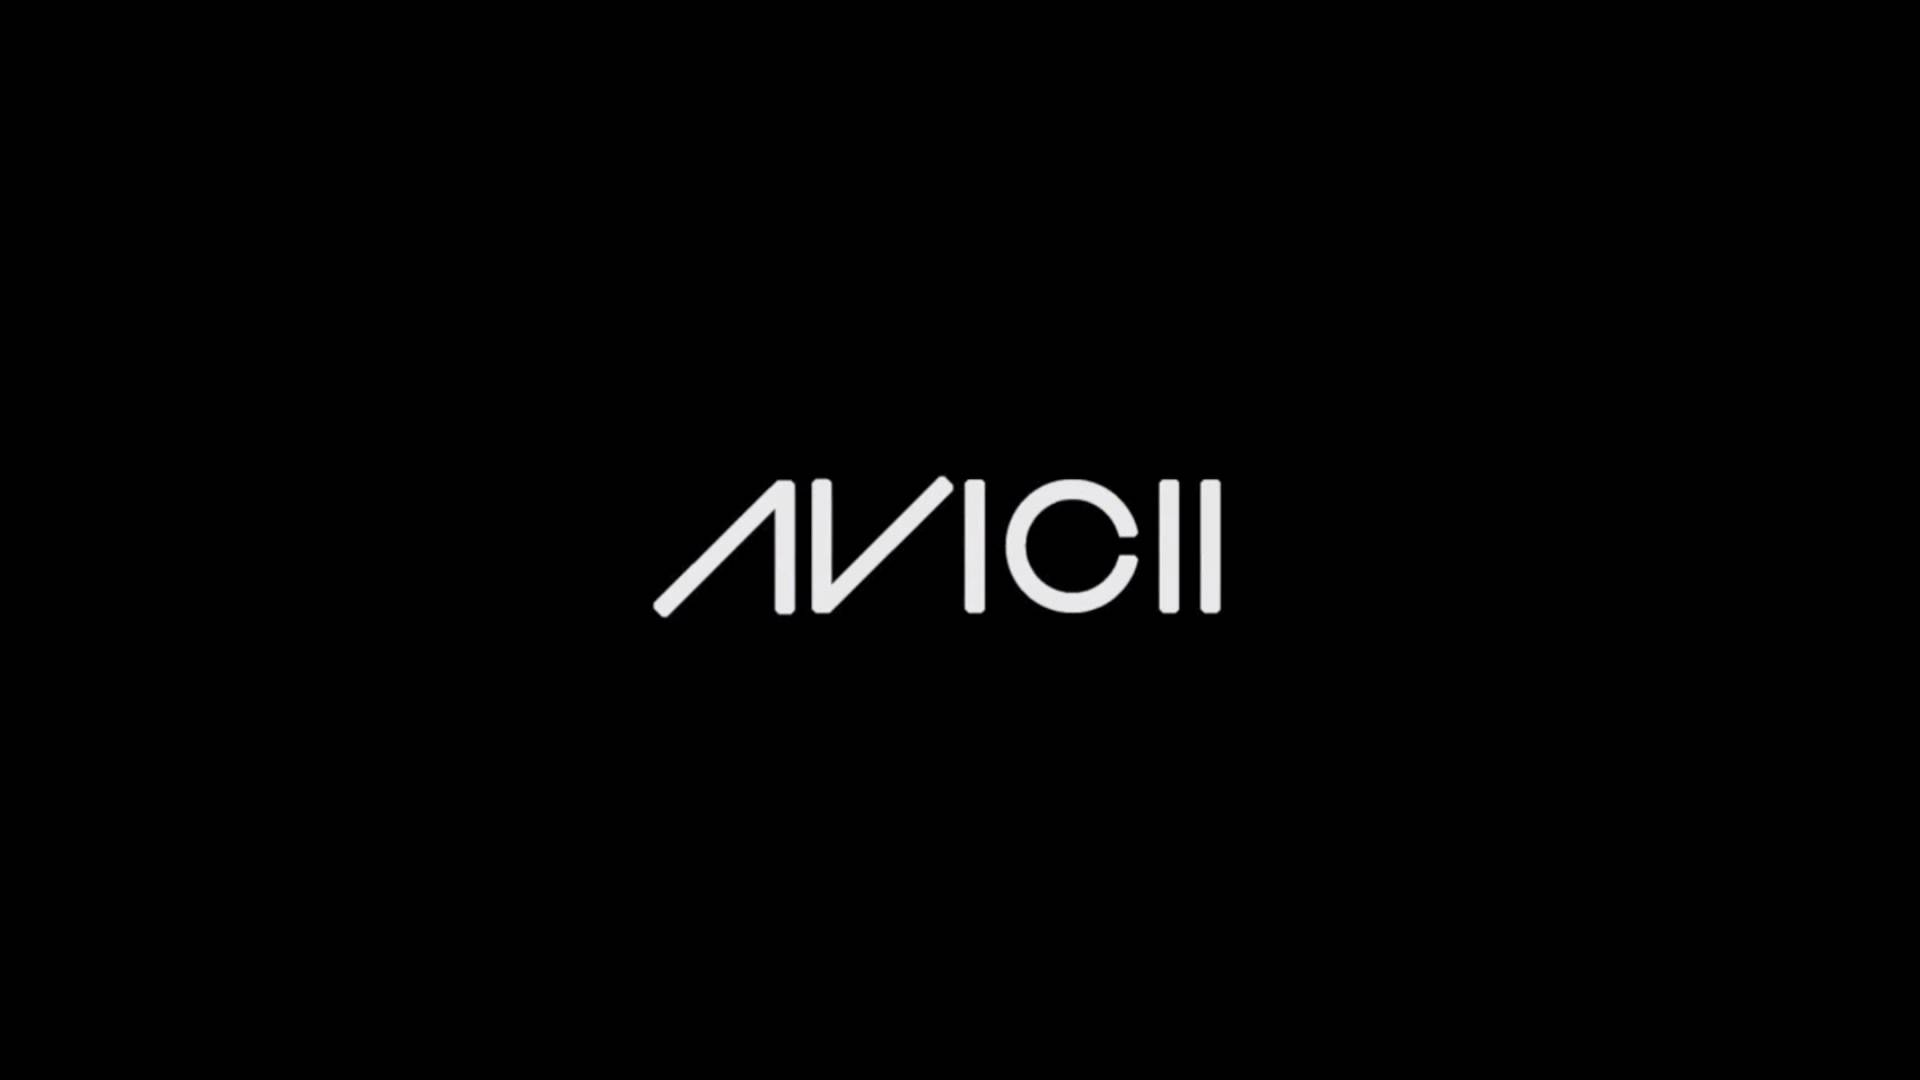 Amazing Funny Quotes Wallpapers Avicii Hd Wallpapers